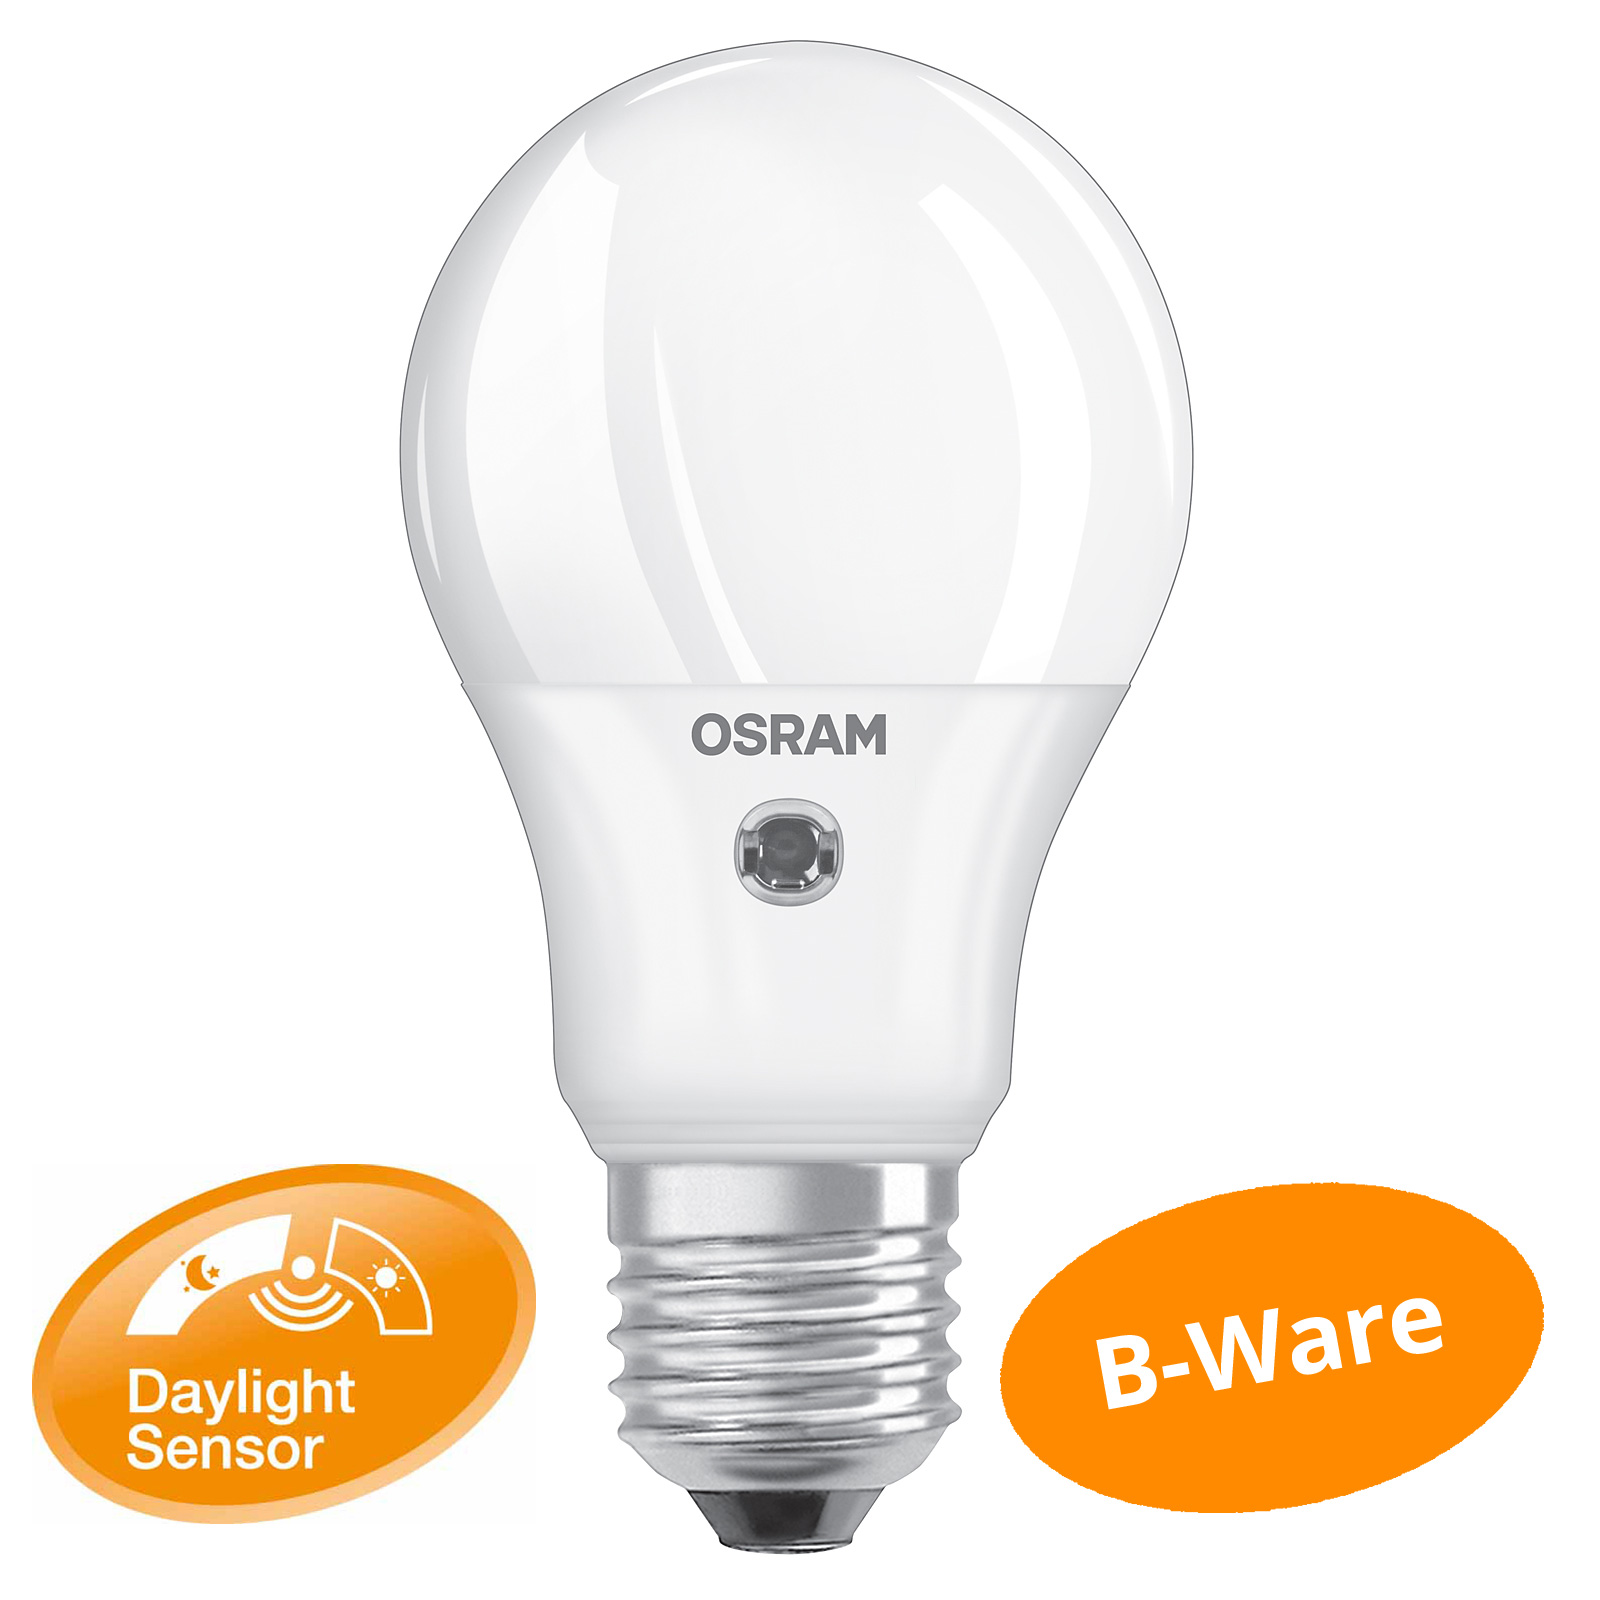 osram daylight sensor classic a 40 e27 5watt wie 40 watt 470 lumen warm white ebay. Black Bedroom Furniture Sets. Home Design Ideas